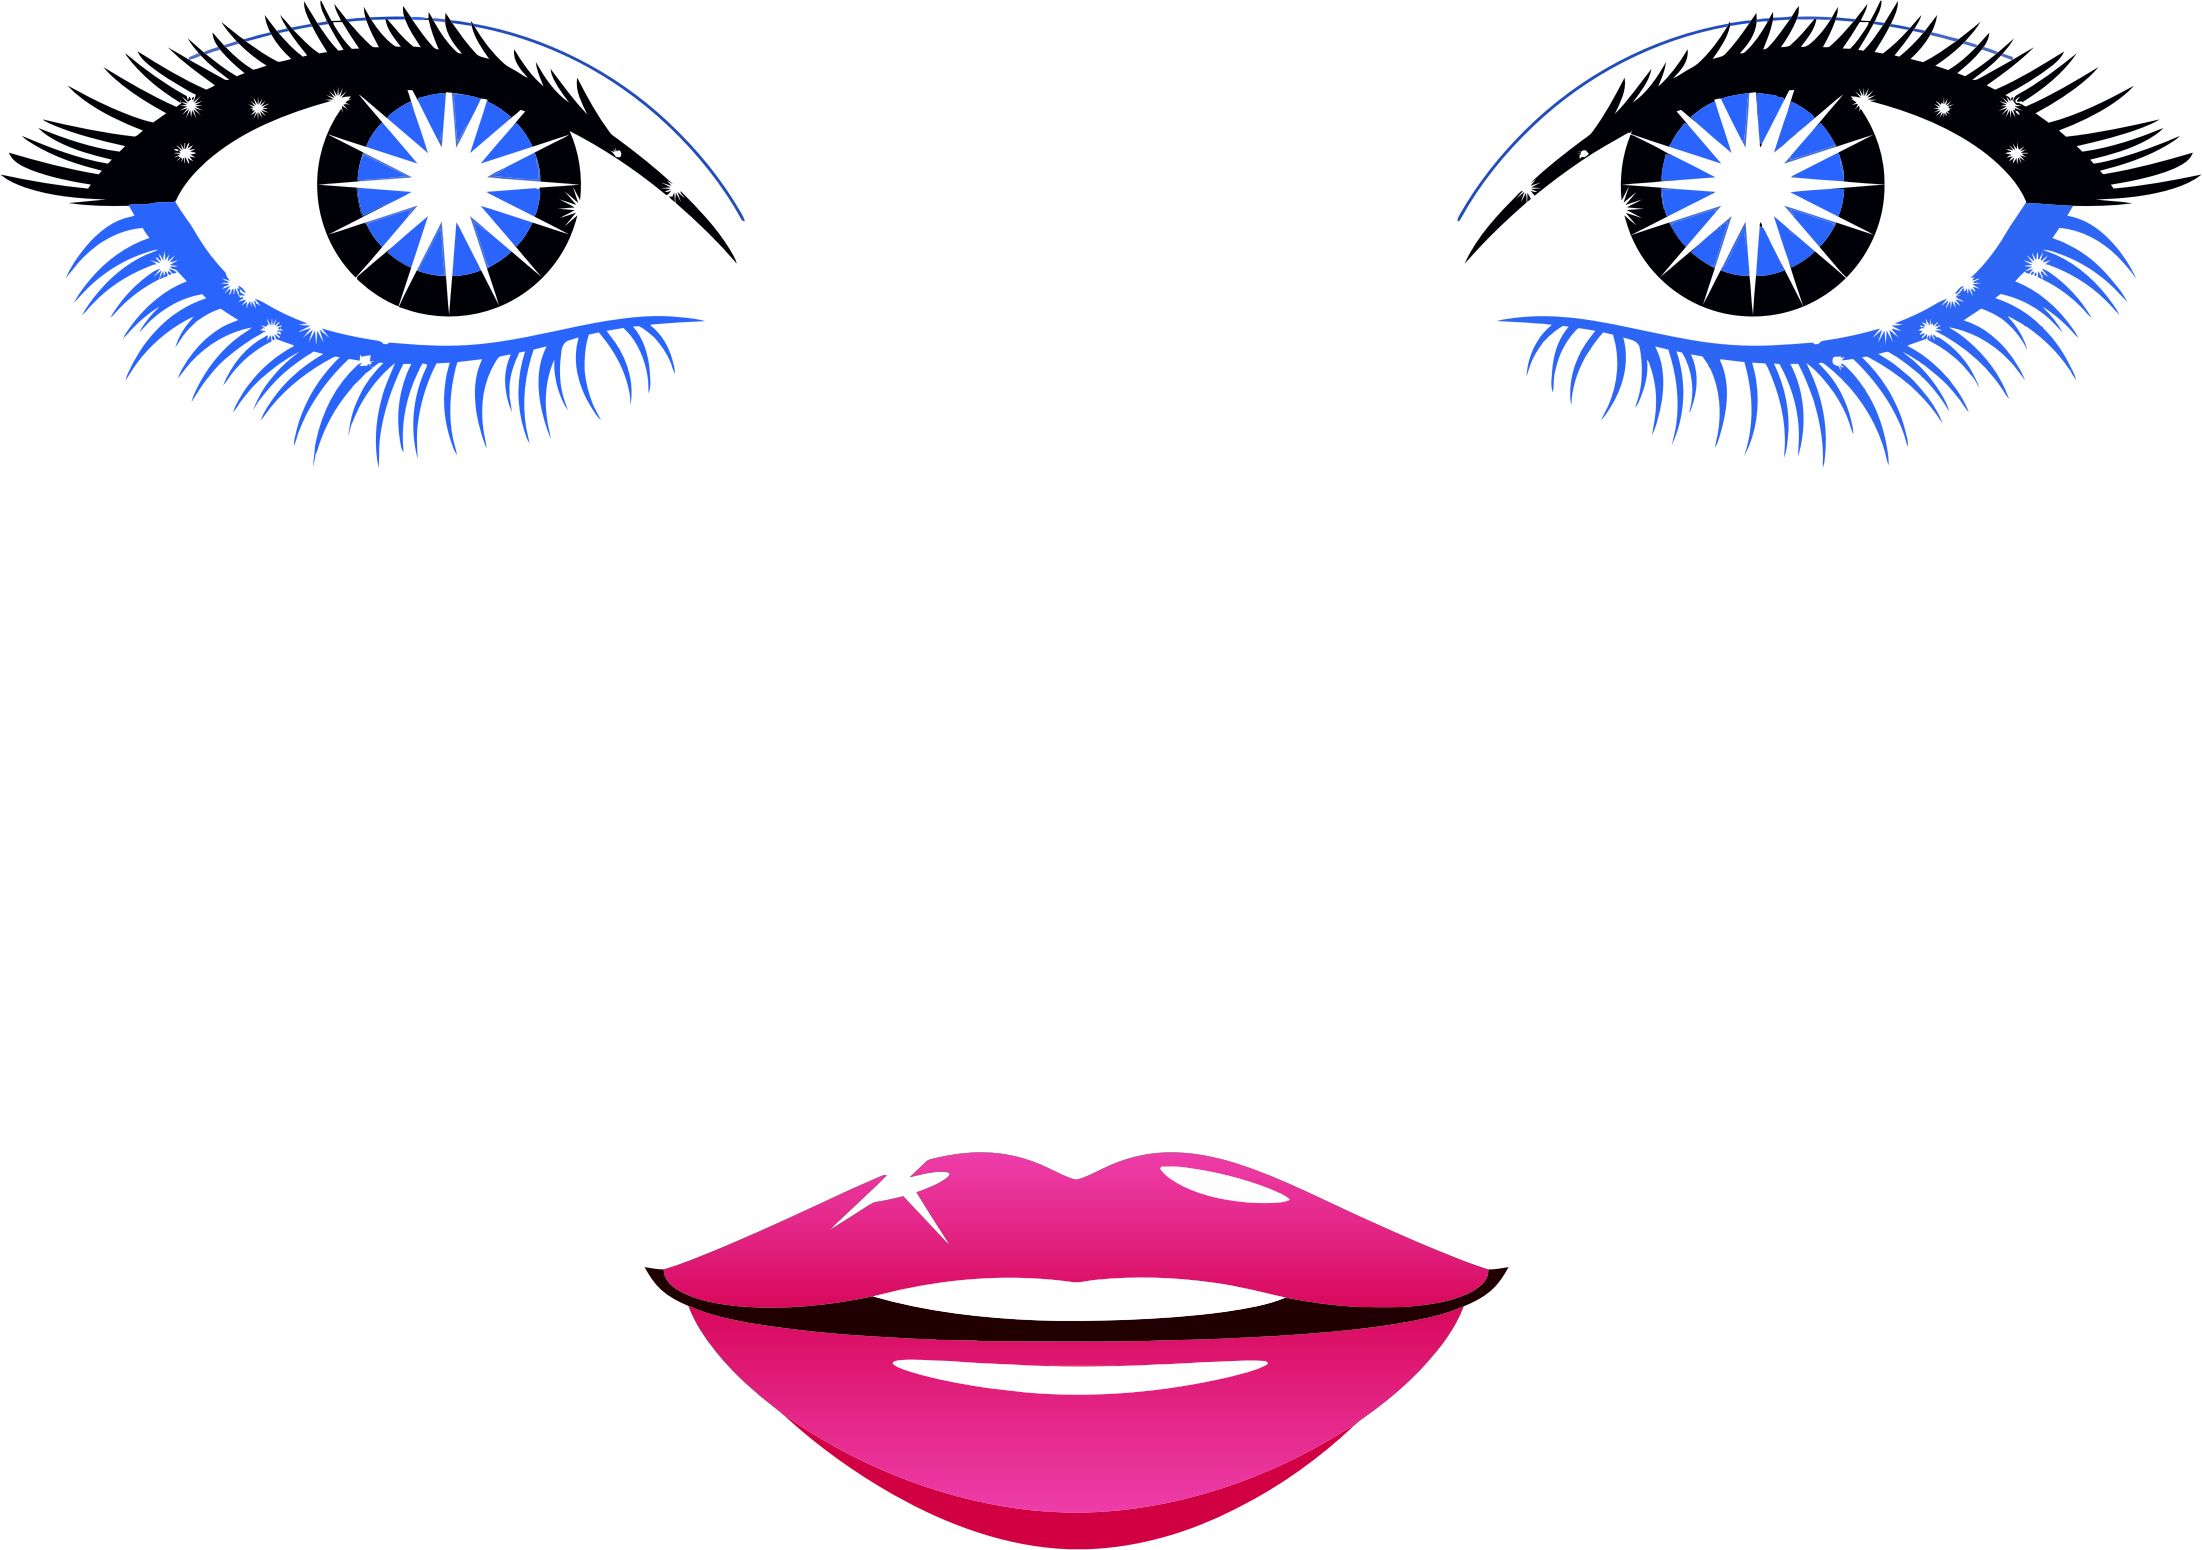 Woman clipart abstract. Female face big image